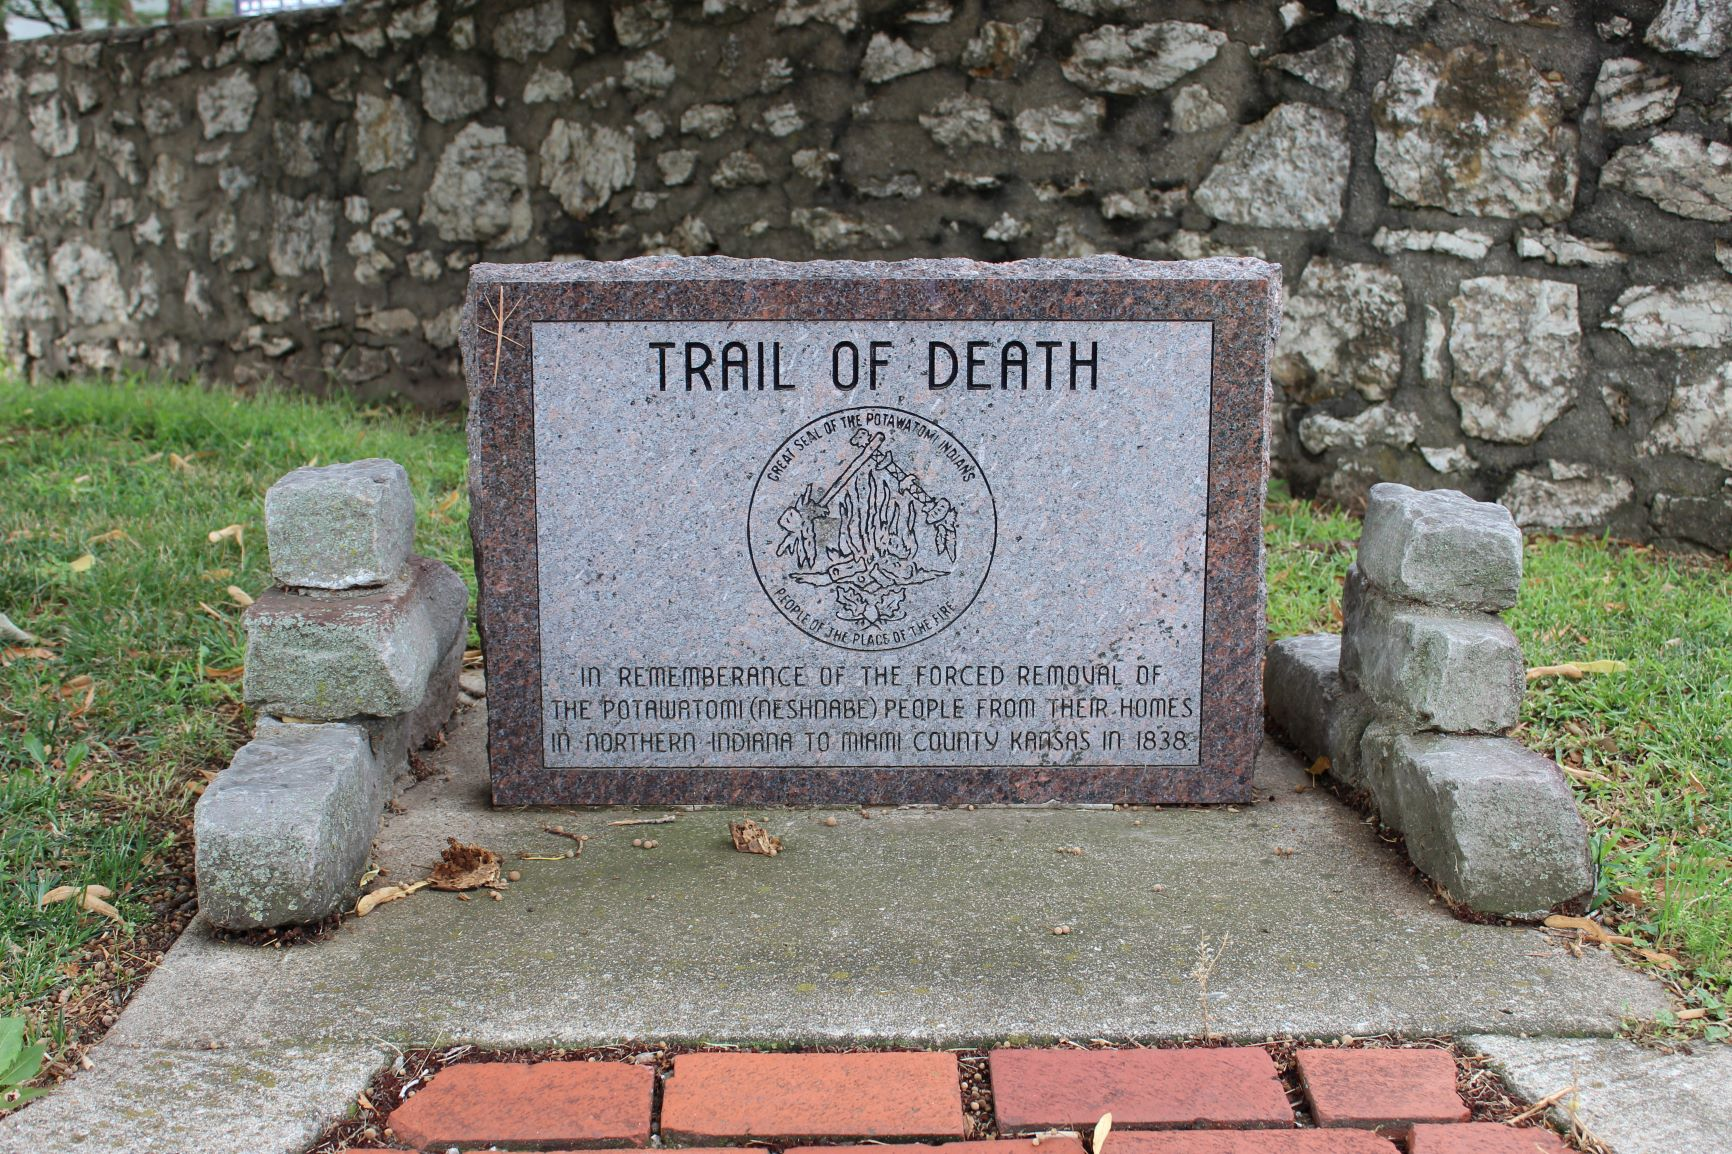 Trail of Death memorial